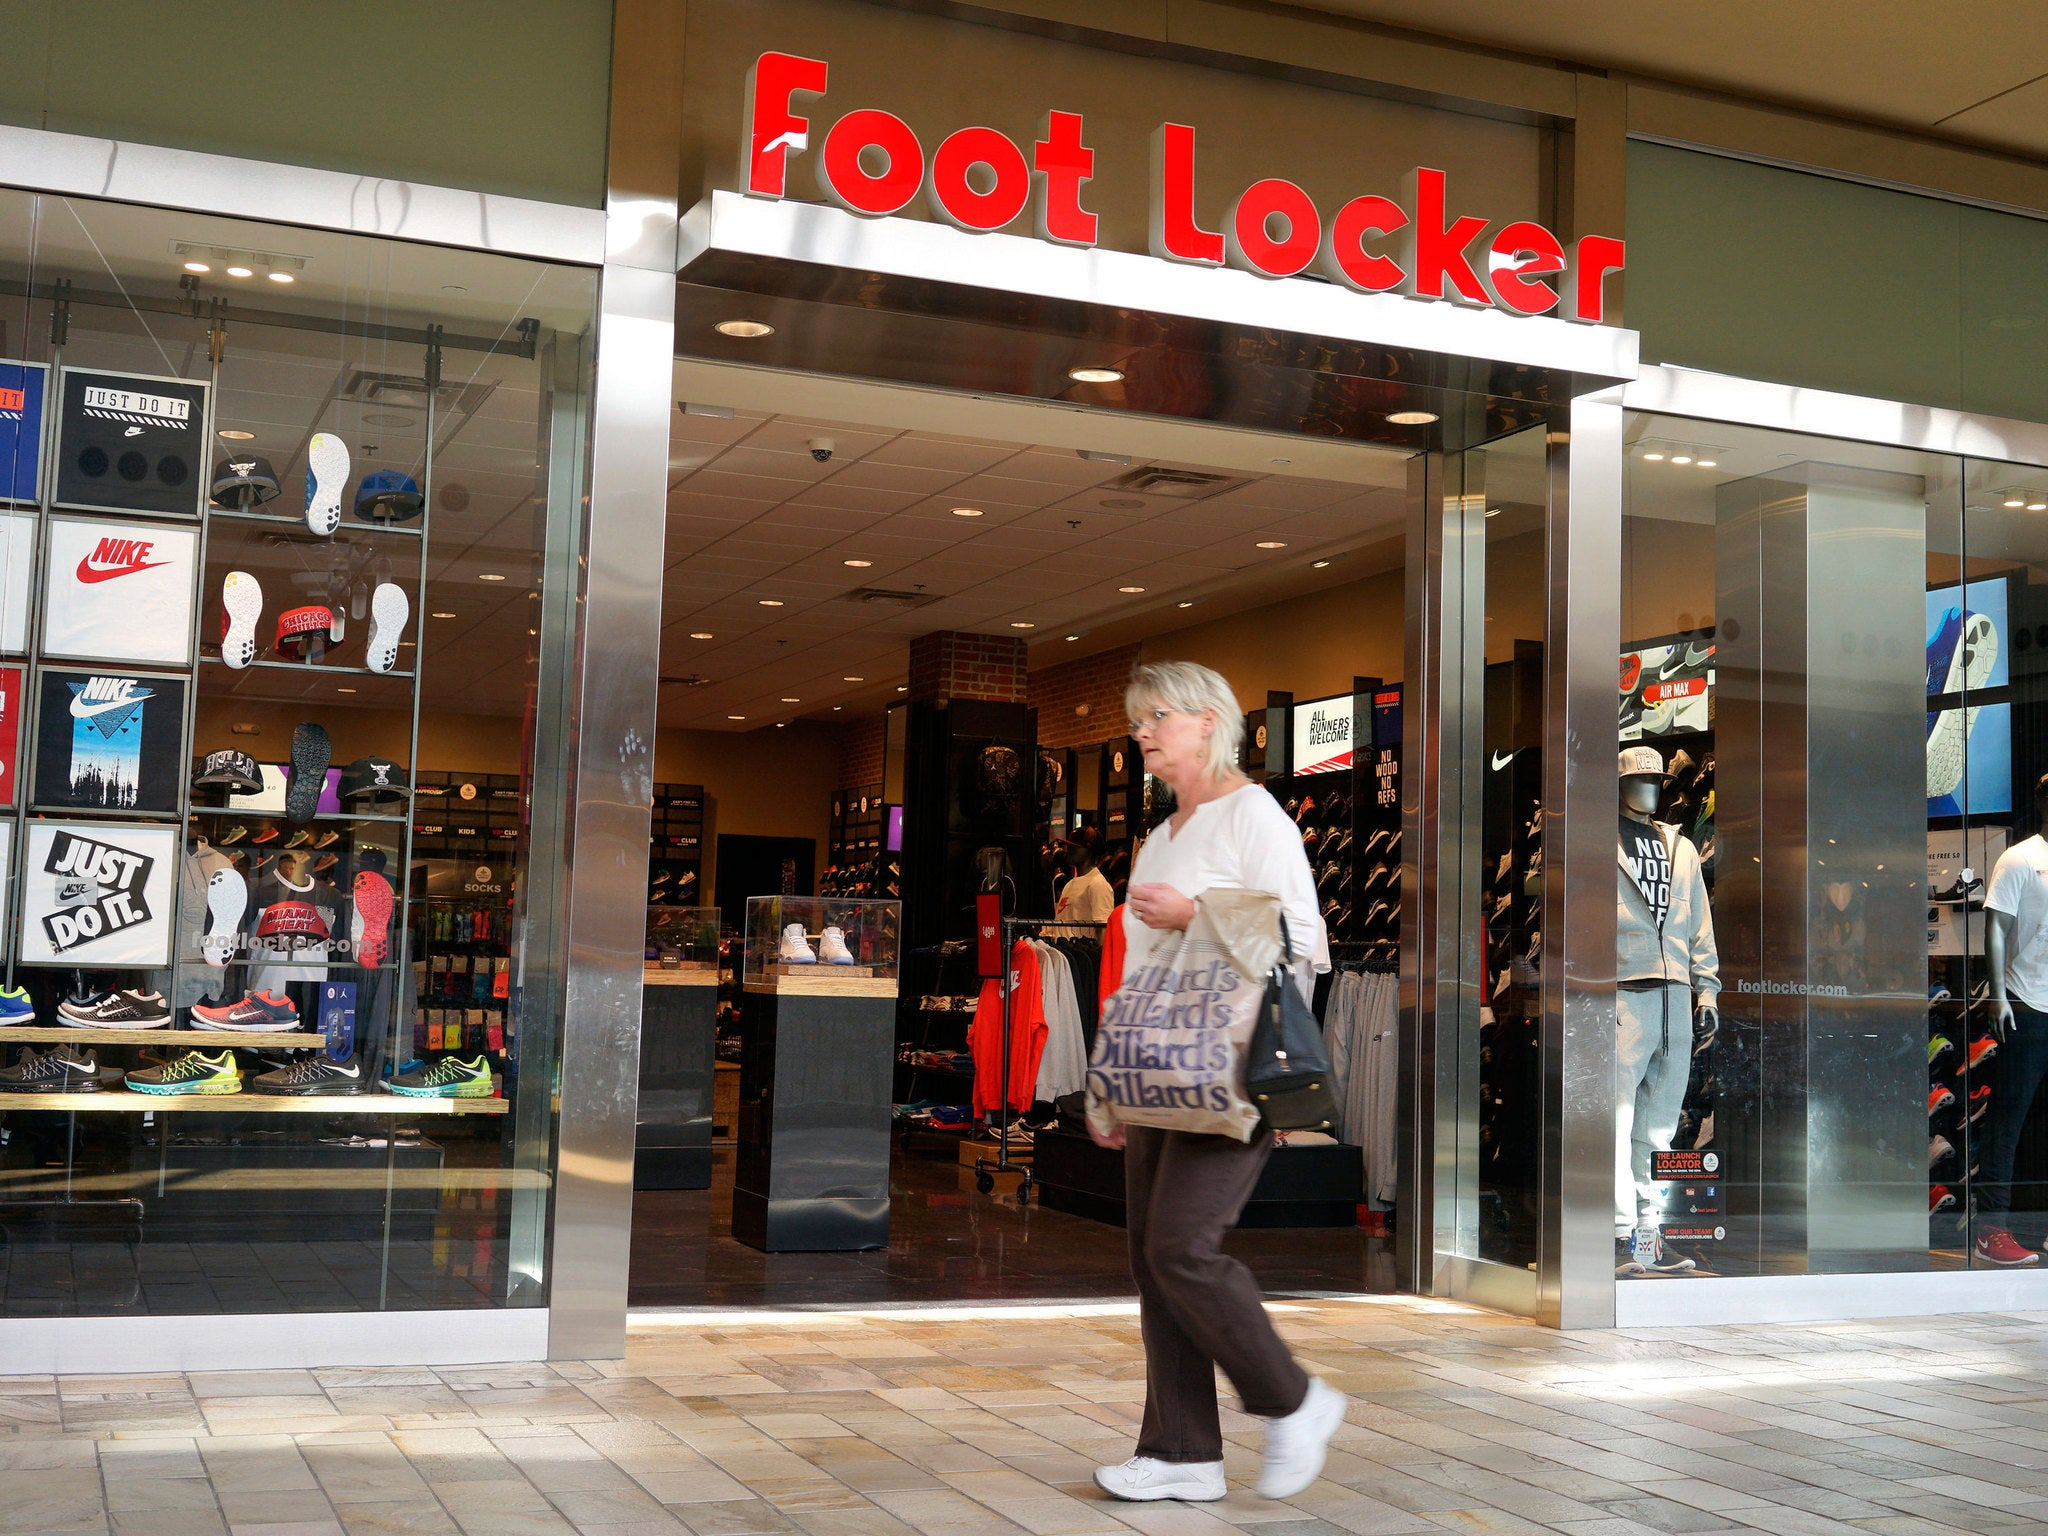 French Connection Foot Locker among stores named and shamed by HMRC